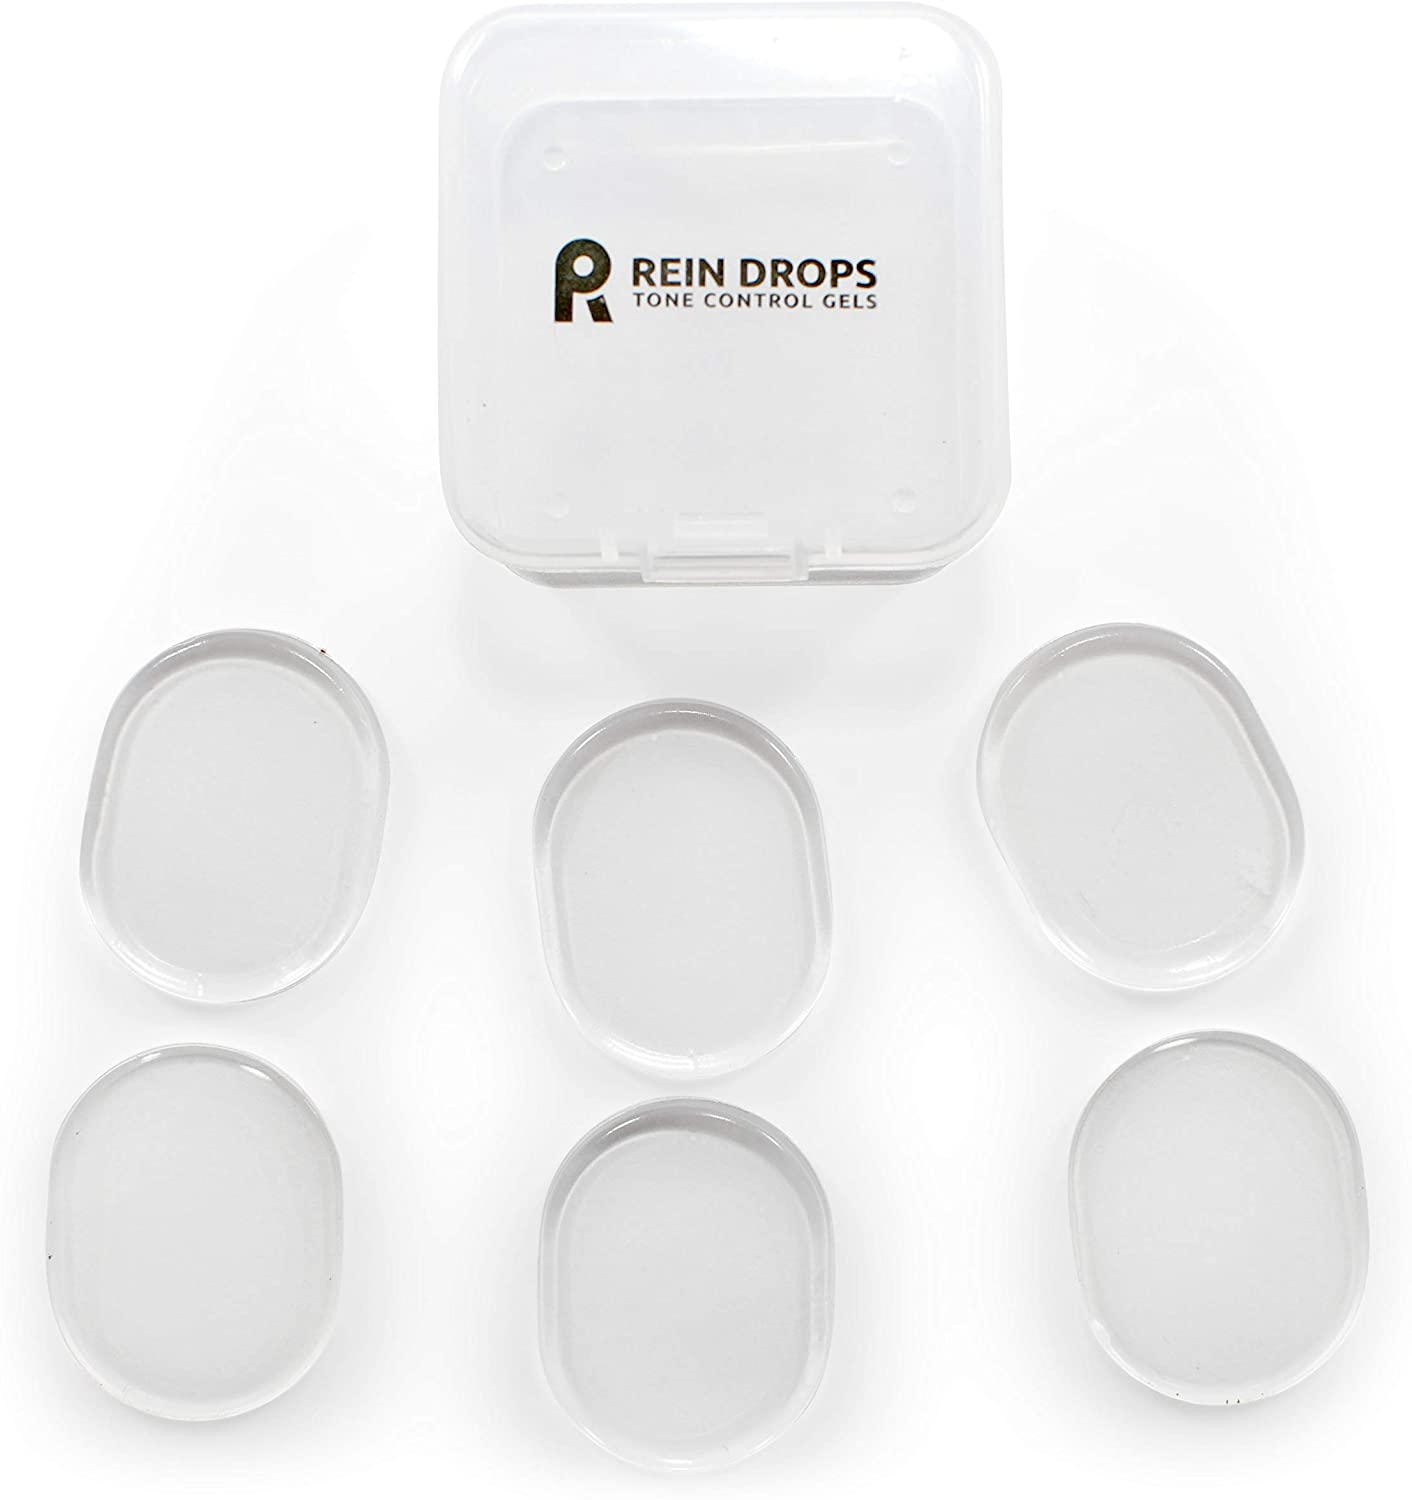 Rein Drops. Drum & Cymbal Tone Control Gels, Six (6) Dampening Gels, Clear Color